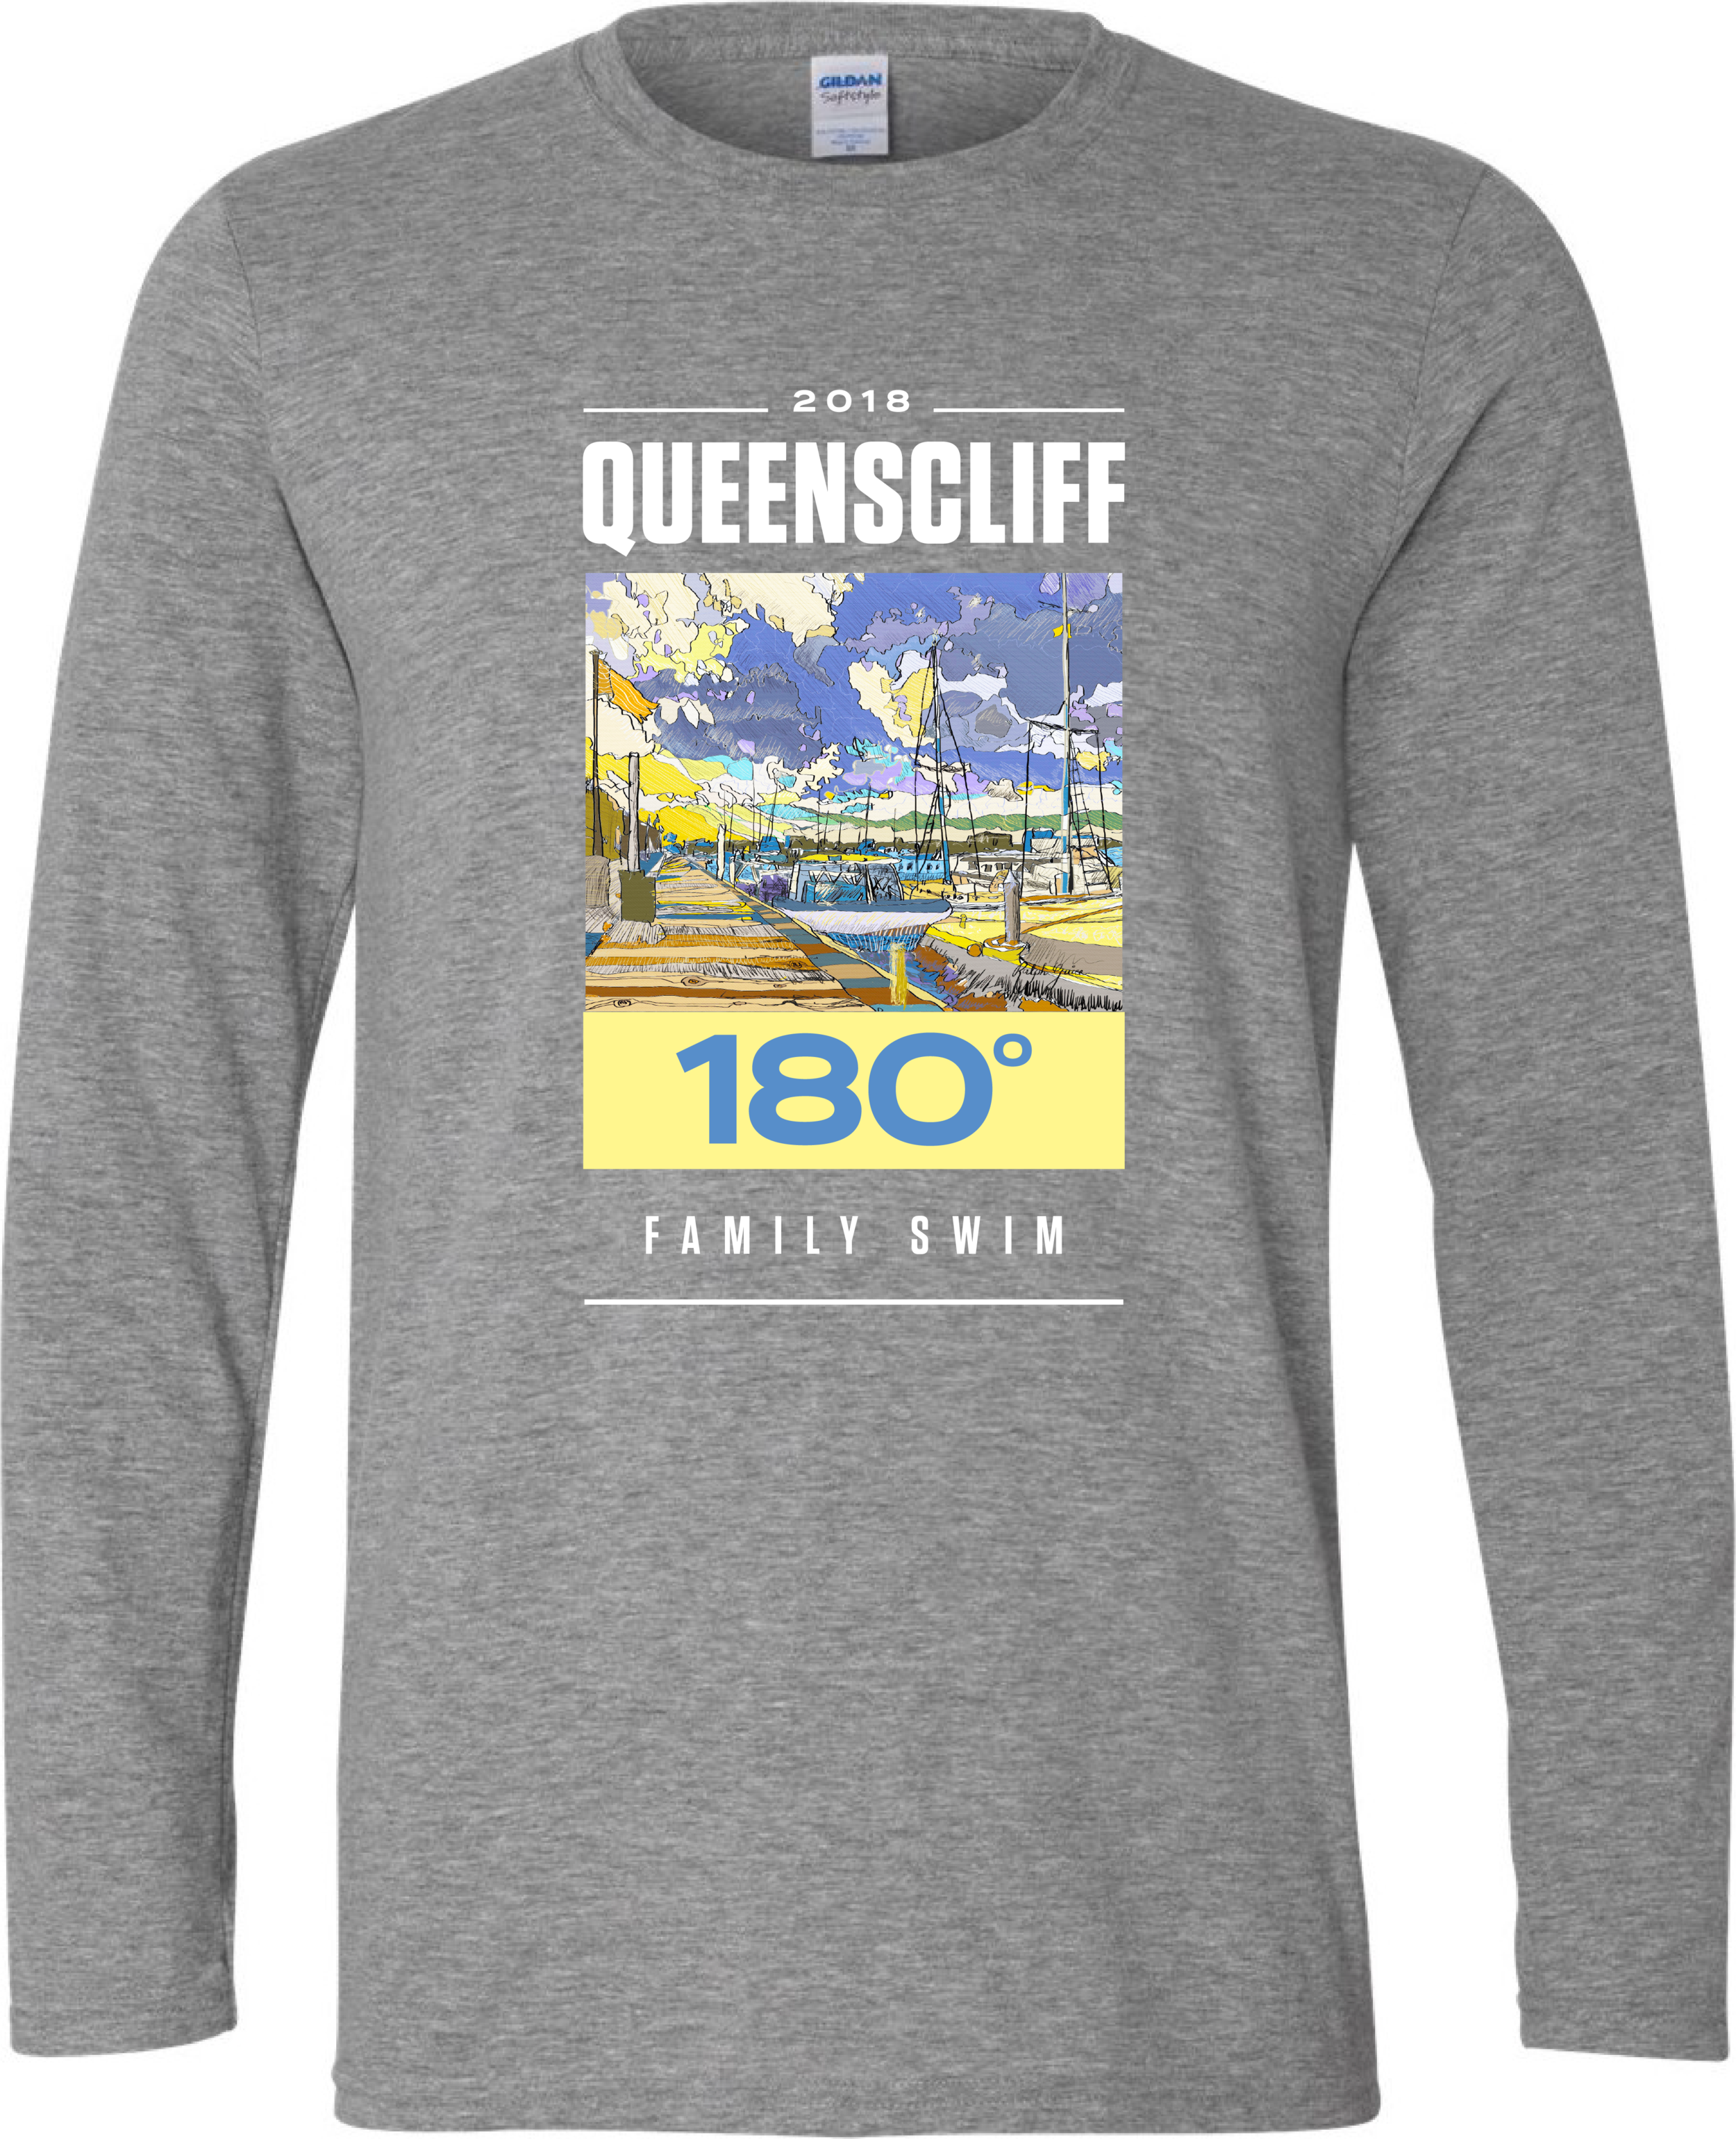 2018 Swim Shirt - Artwork created on IPAD by Ralph Guice, Eltham Victoria.Graphic Design by Duro Cubrilo